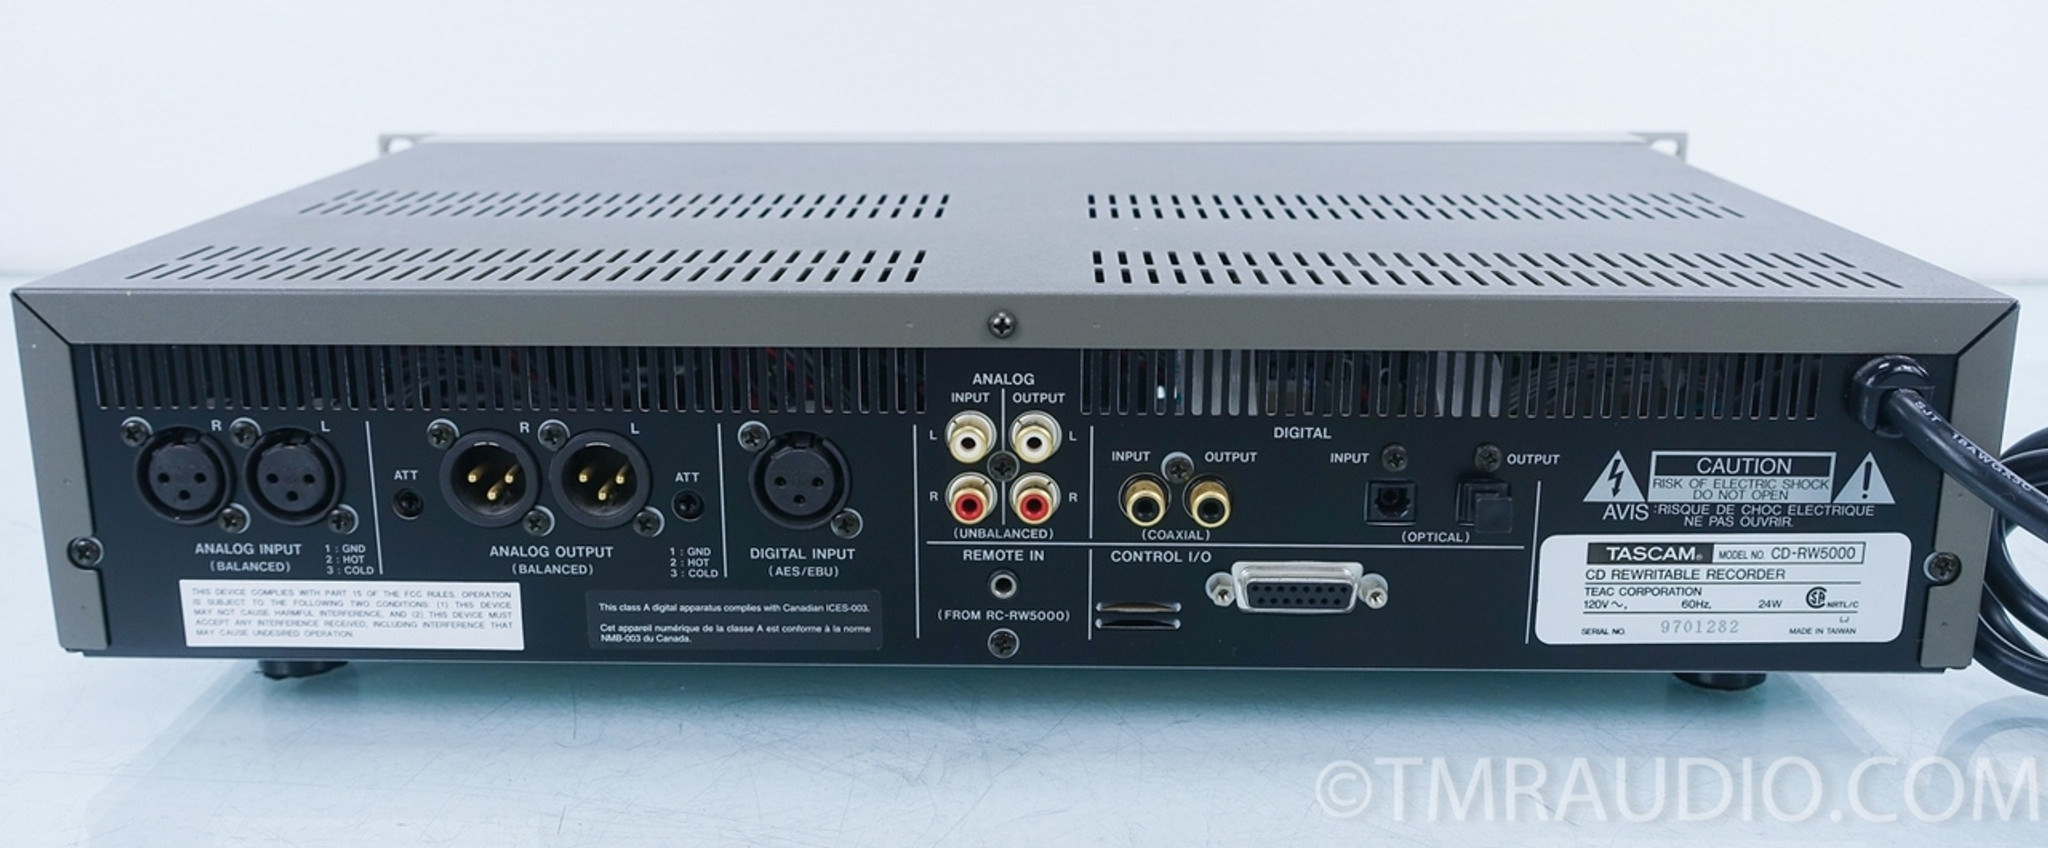 Tascam Cd-rw5000 Cd Recorder In Factory Box - Music Room